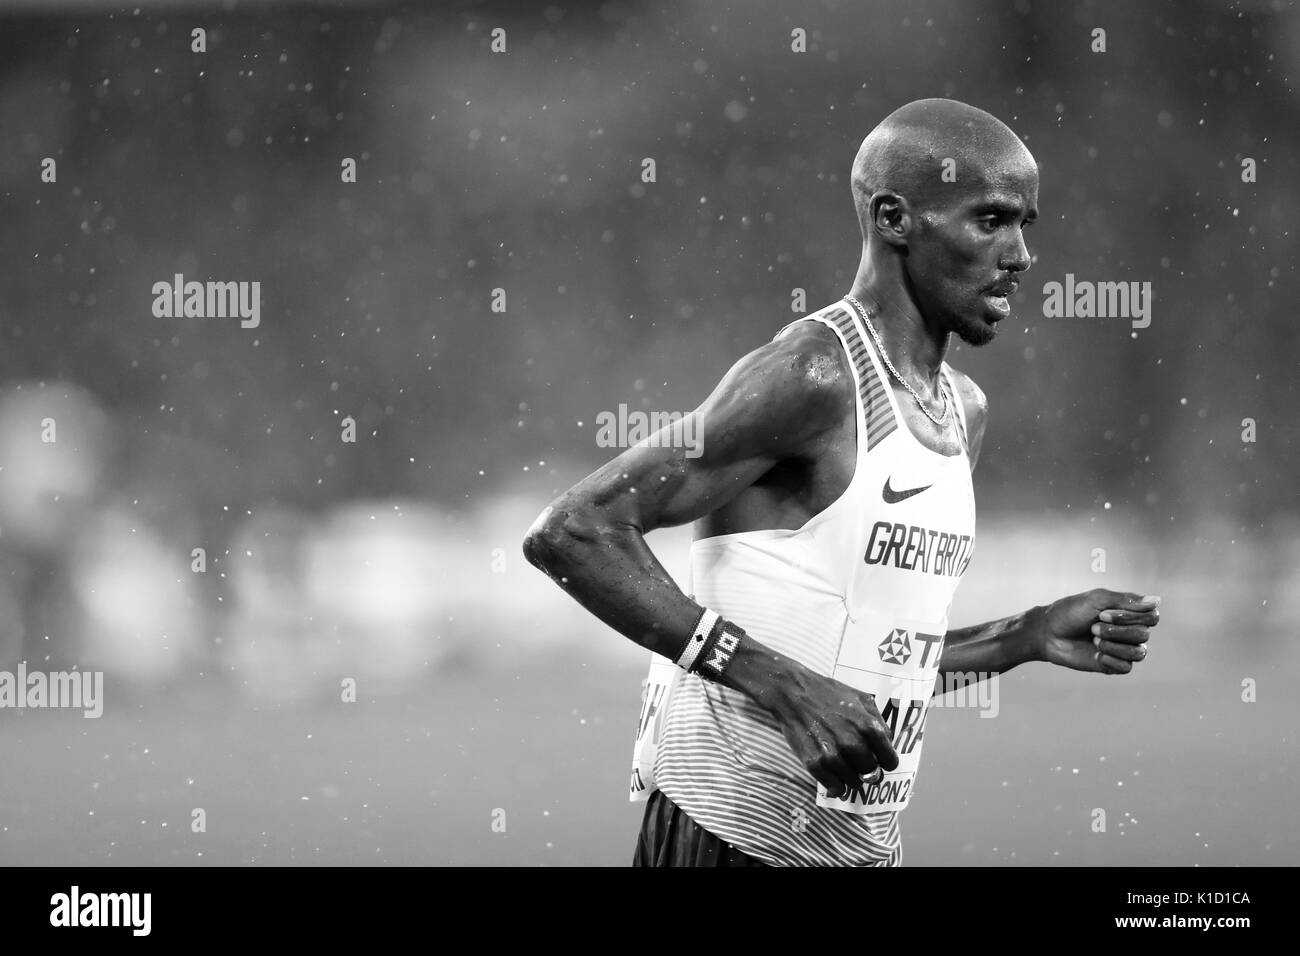 Mo FARAH (Great Britain) competing in the Men's 5000m Heat 1 at the 2017, IAAF World Championships, Queen Elizabeth Olympic Park, Stratford, London, UK. - Stock Image